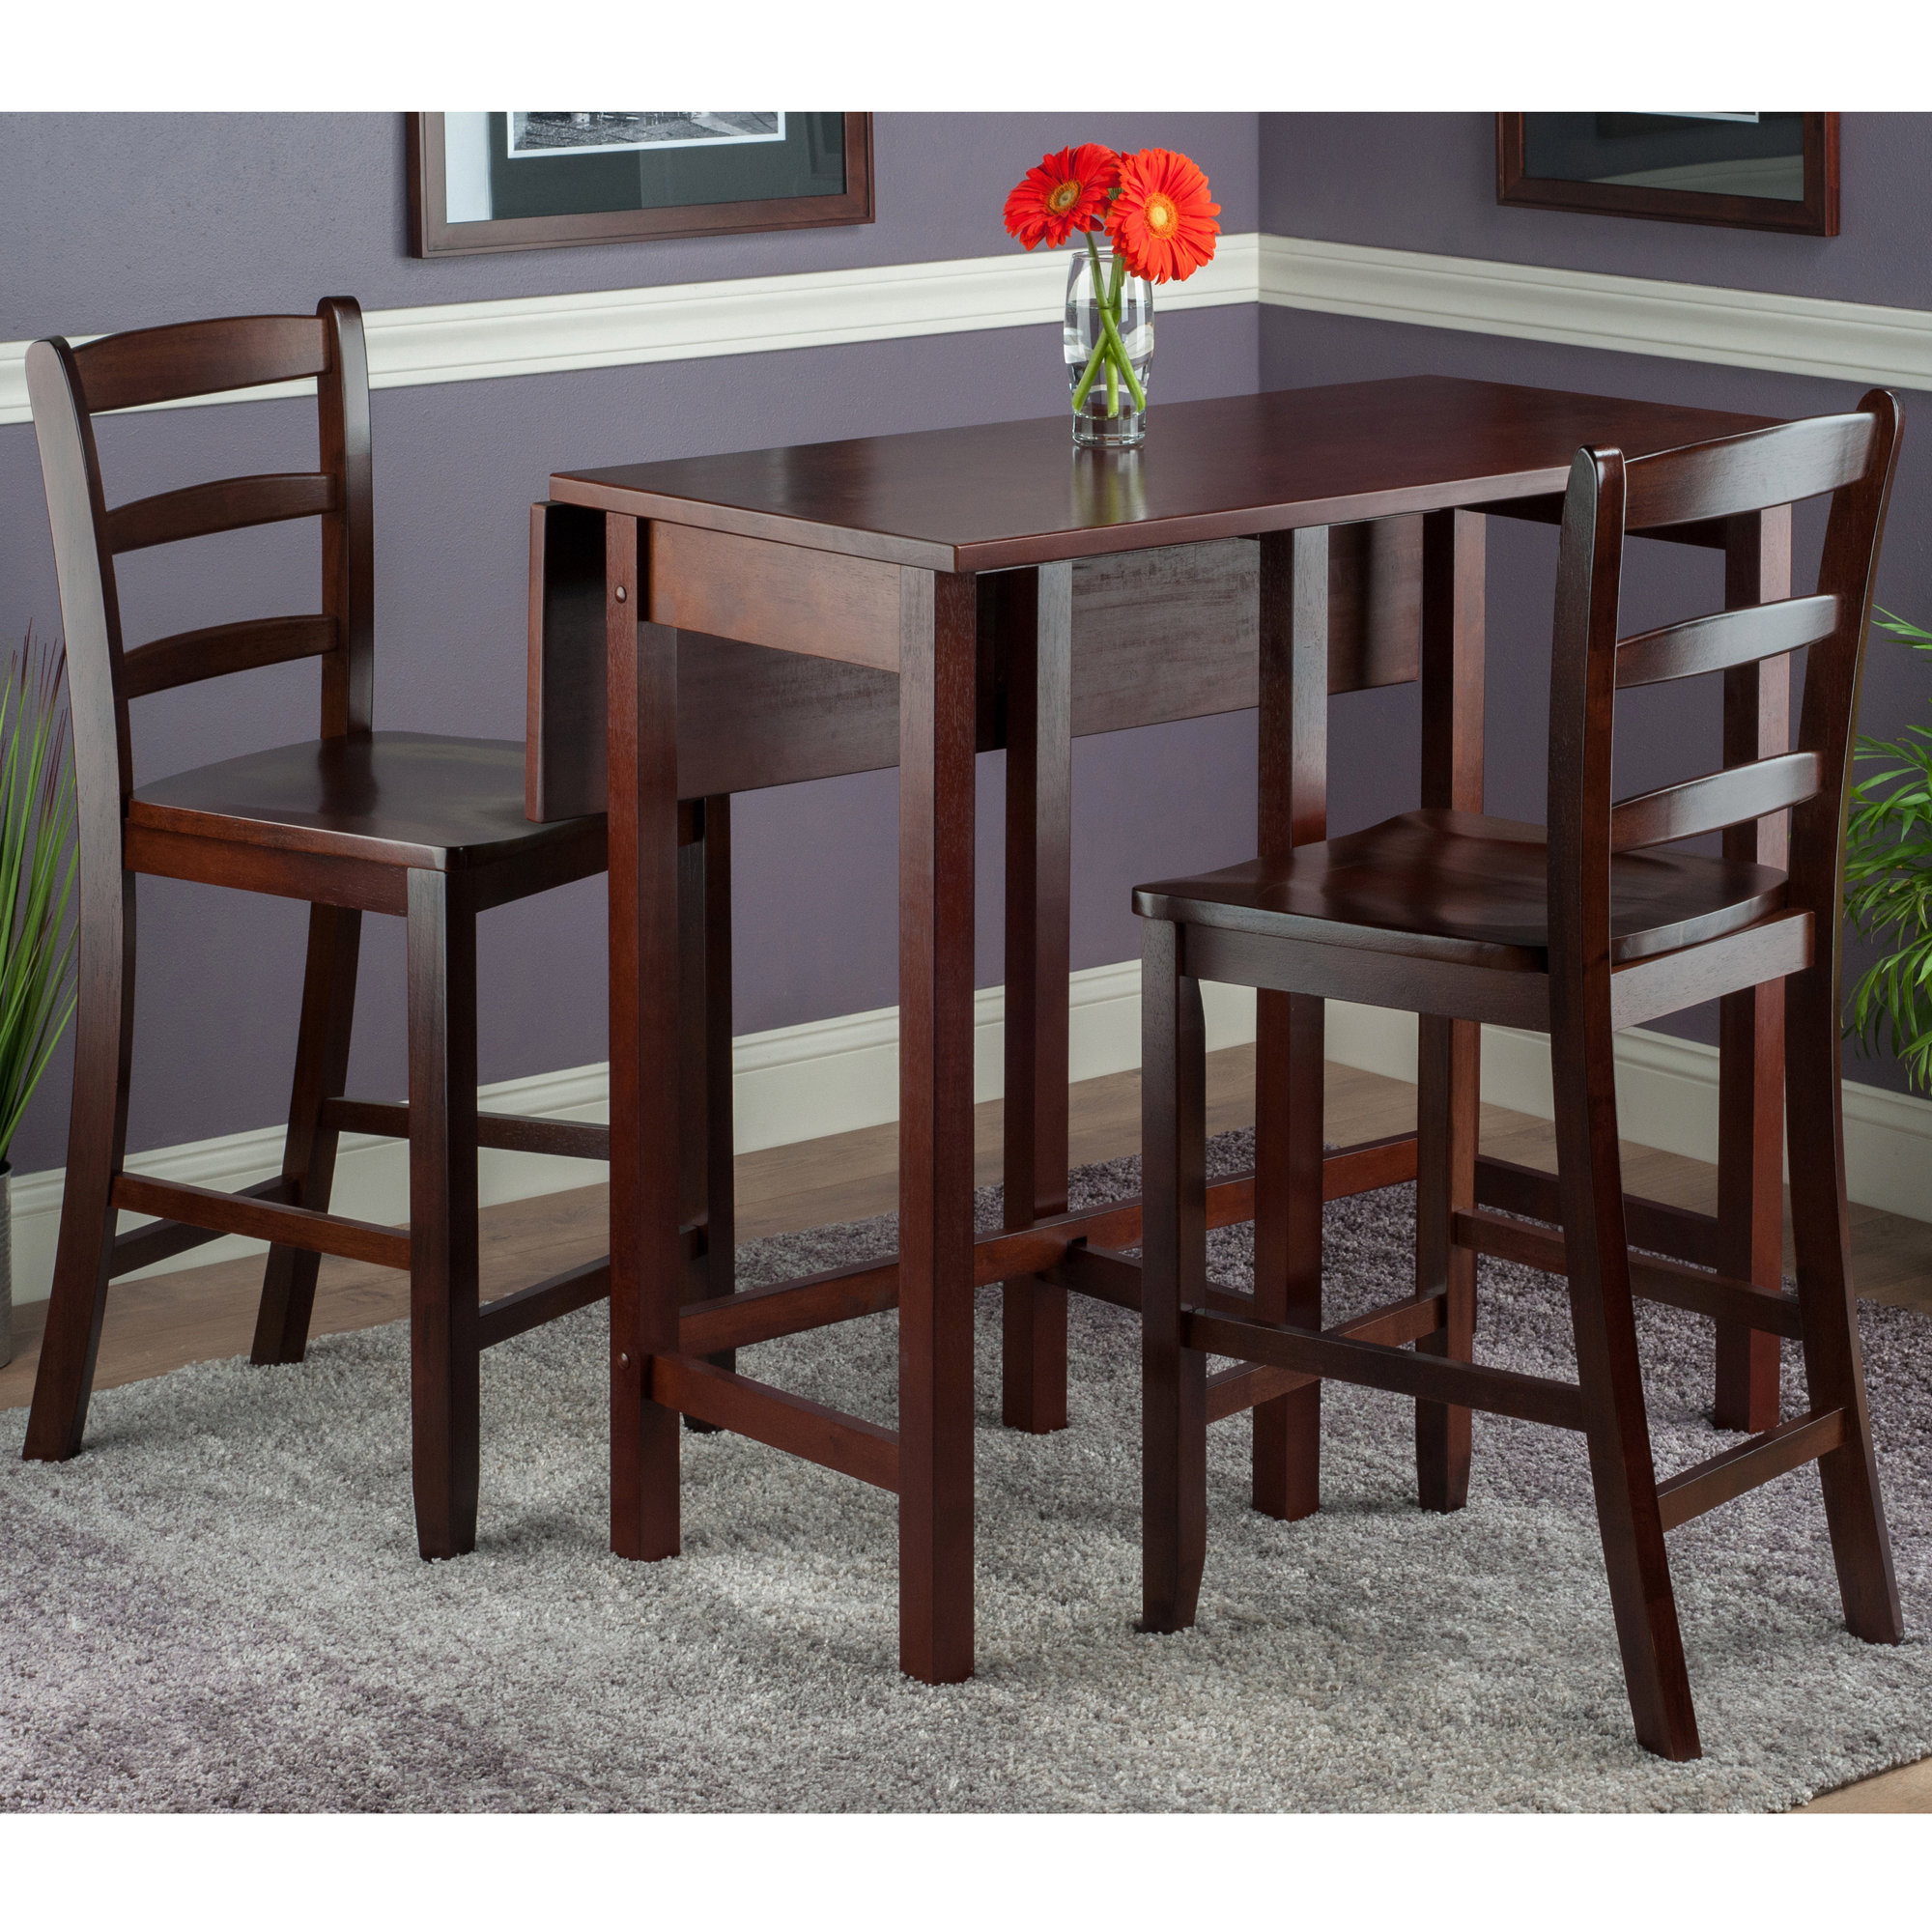 Most Recently Released Red Barrel Studio Bettencourt 3 Piece Drop Leaf Dining Set Inside Bettencourt 3 Piece Counter Height Dining Sets (#14 of 20)